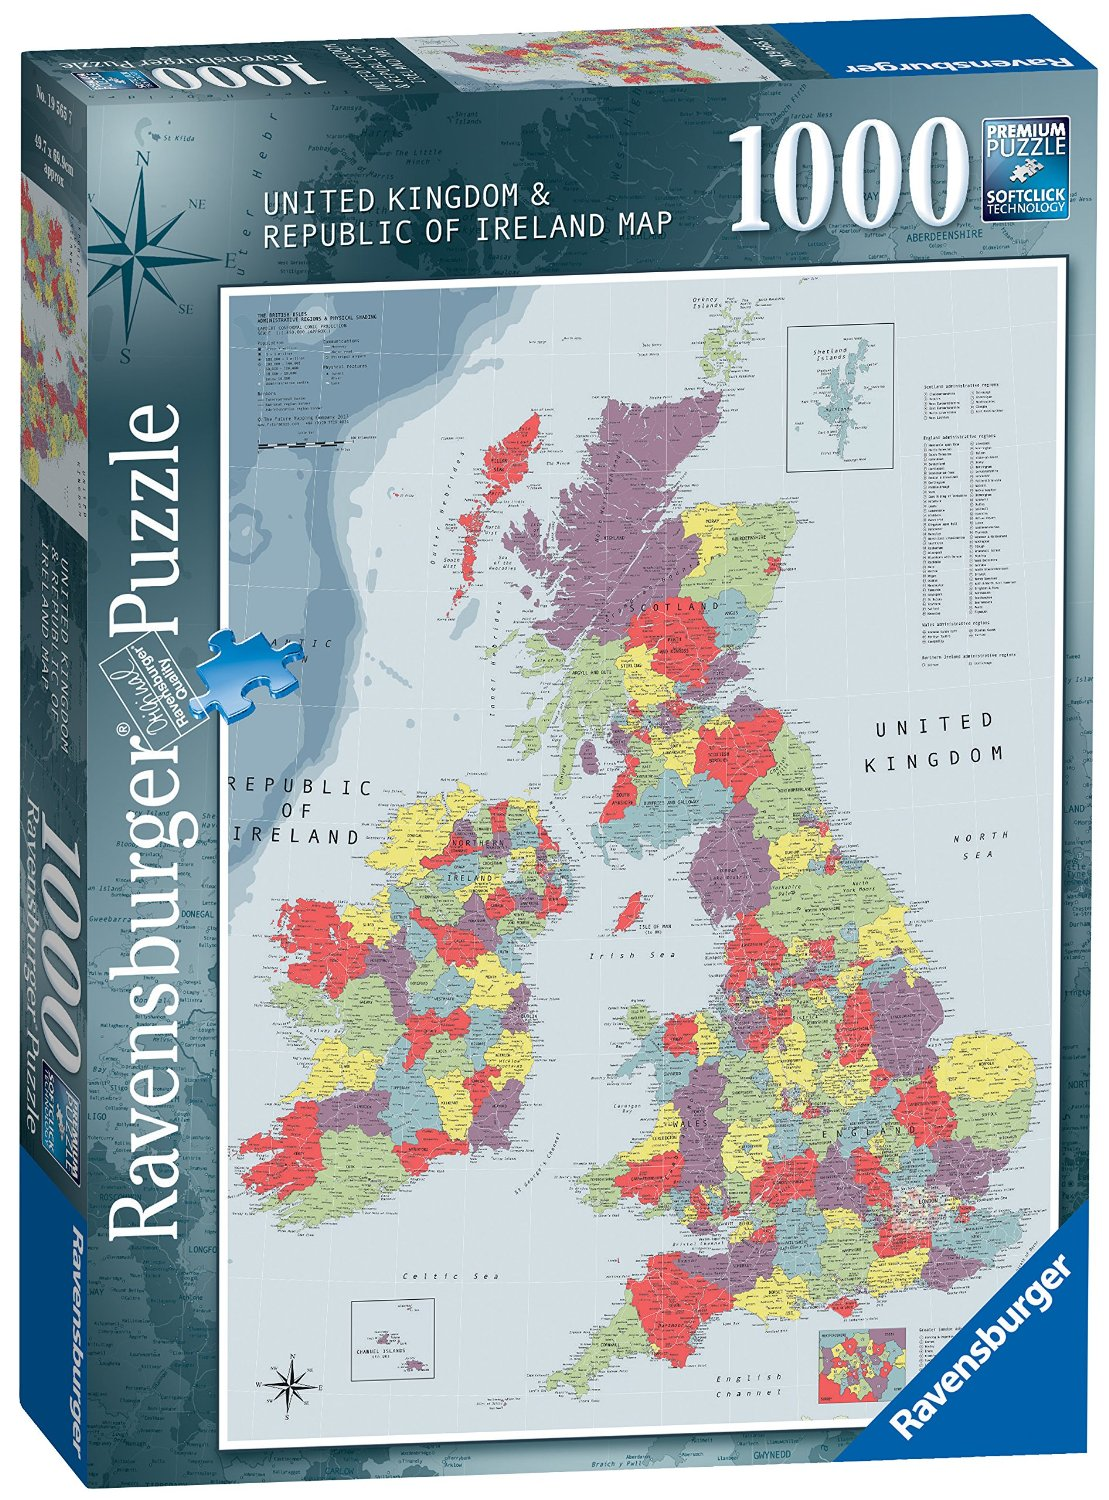 Puzzle united kingdom and republic of ireland map ravensburger 19565 united kingdom and republic of ireland map puzzle ravensburger 19565 united gumiabroncs Images